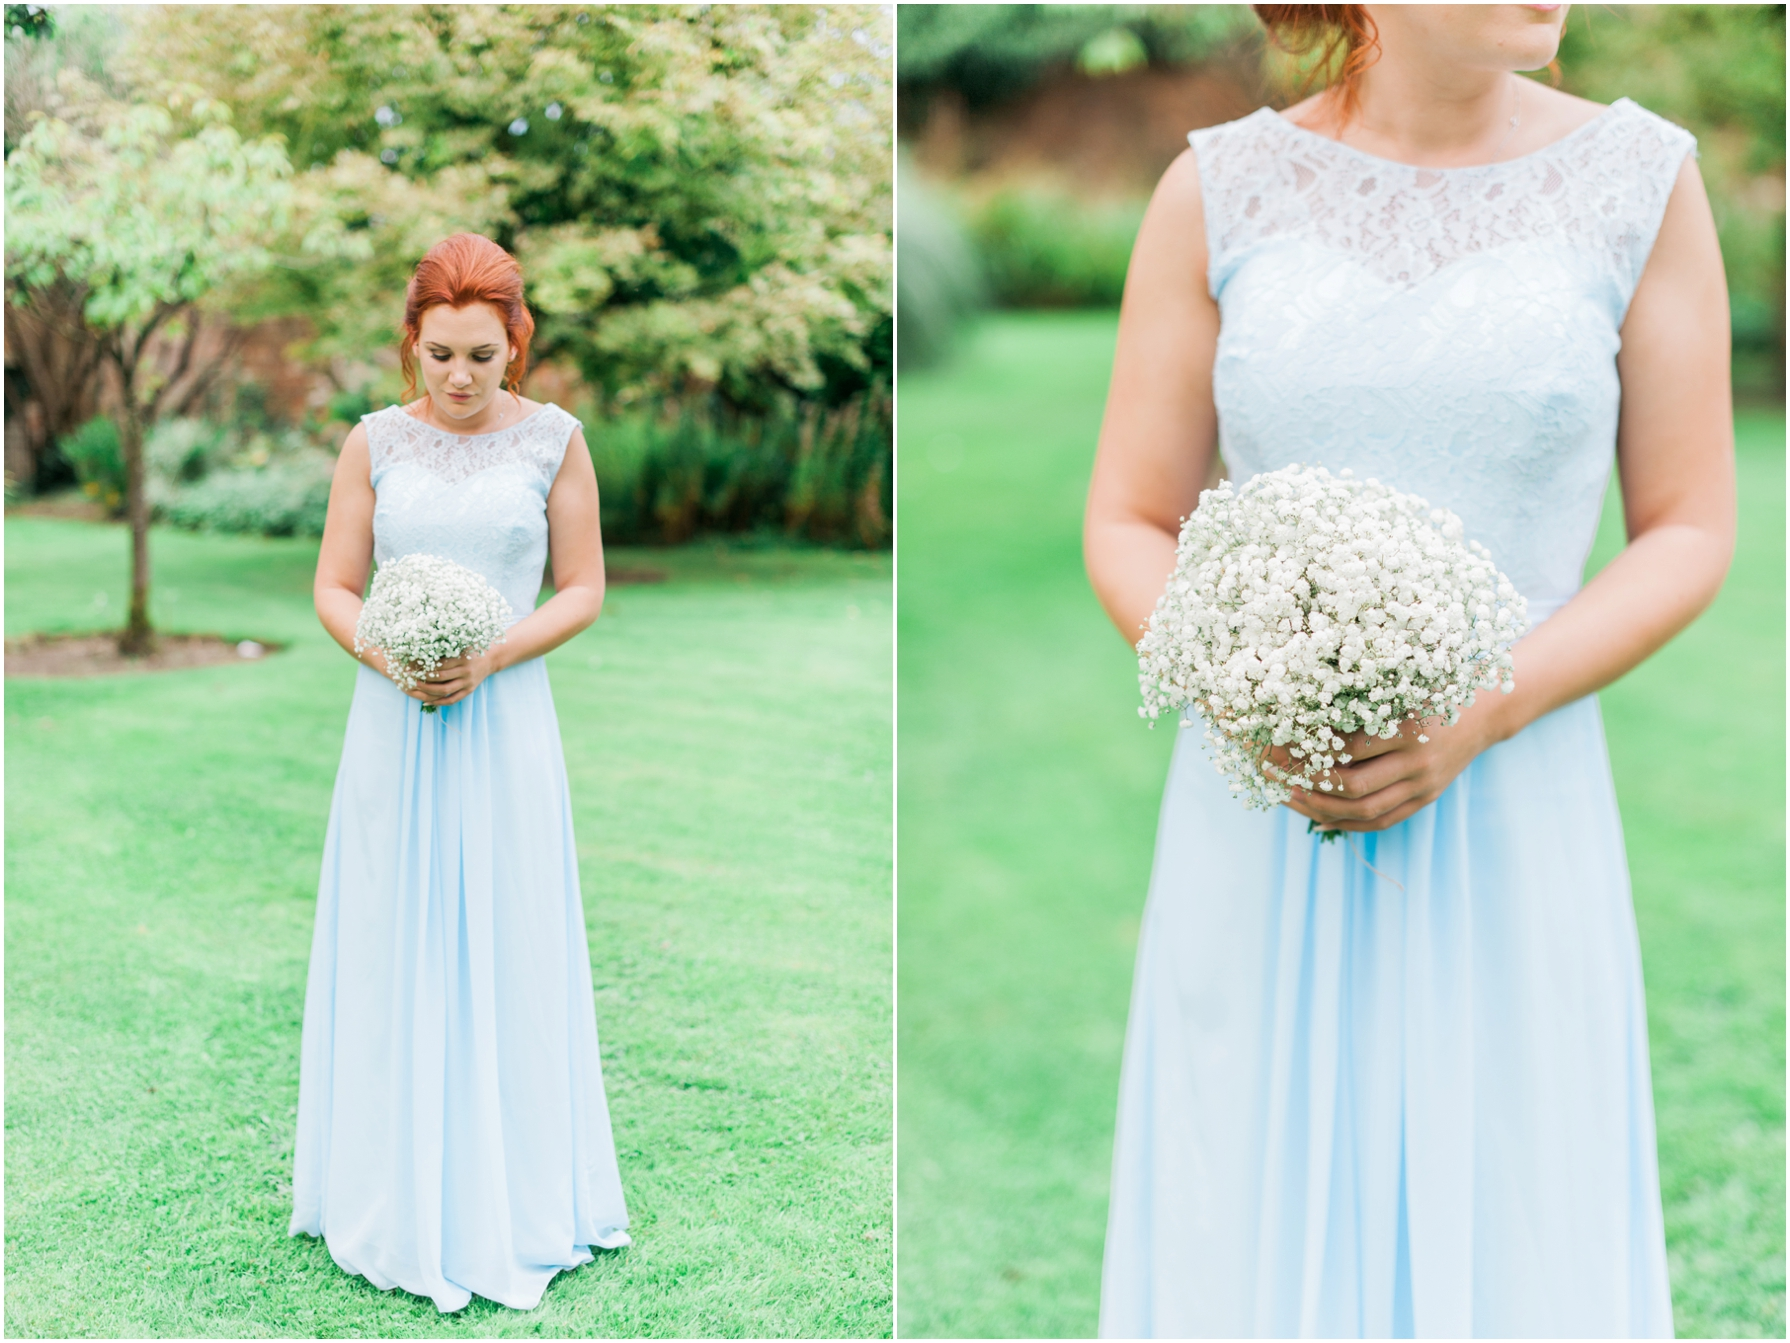 red haired bridesmaid holding a white bouquet wearing a pale blue dress